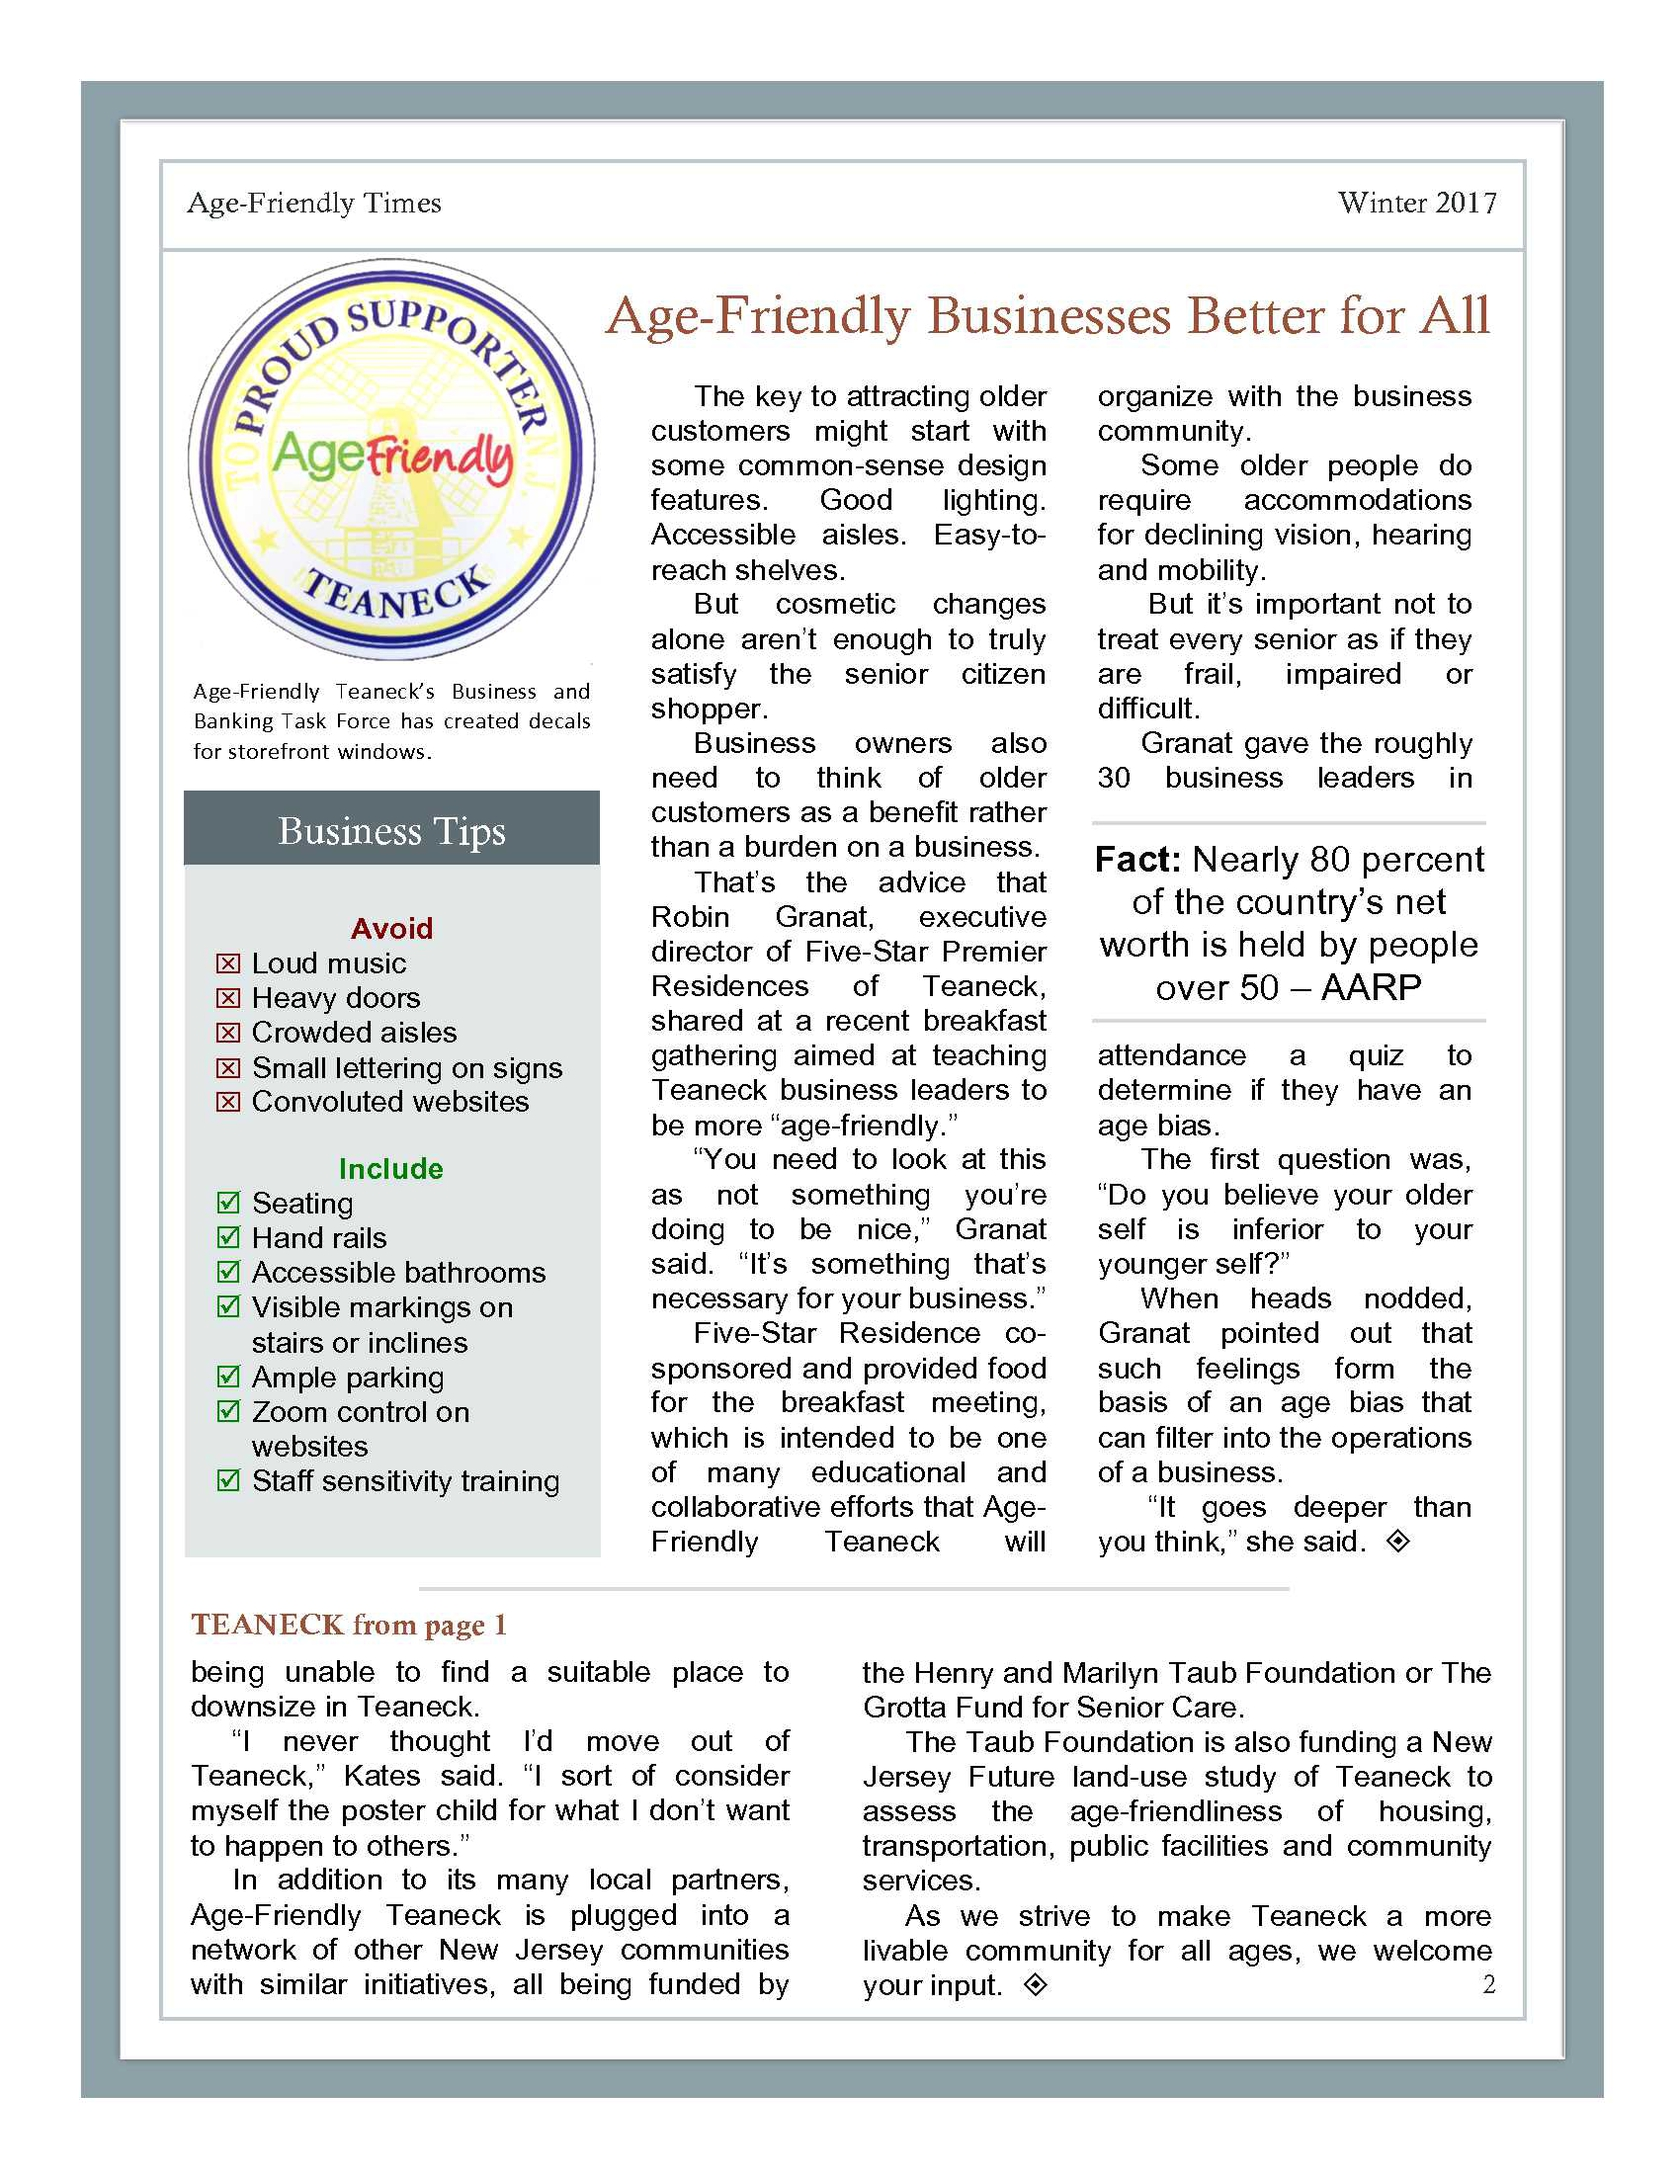 Township of teaneck new jersey 2017 winter age friendly times newsletter 2017 e1 vfinal2g 1betcityfo Images